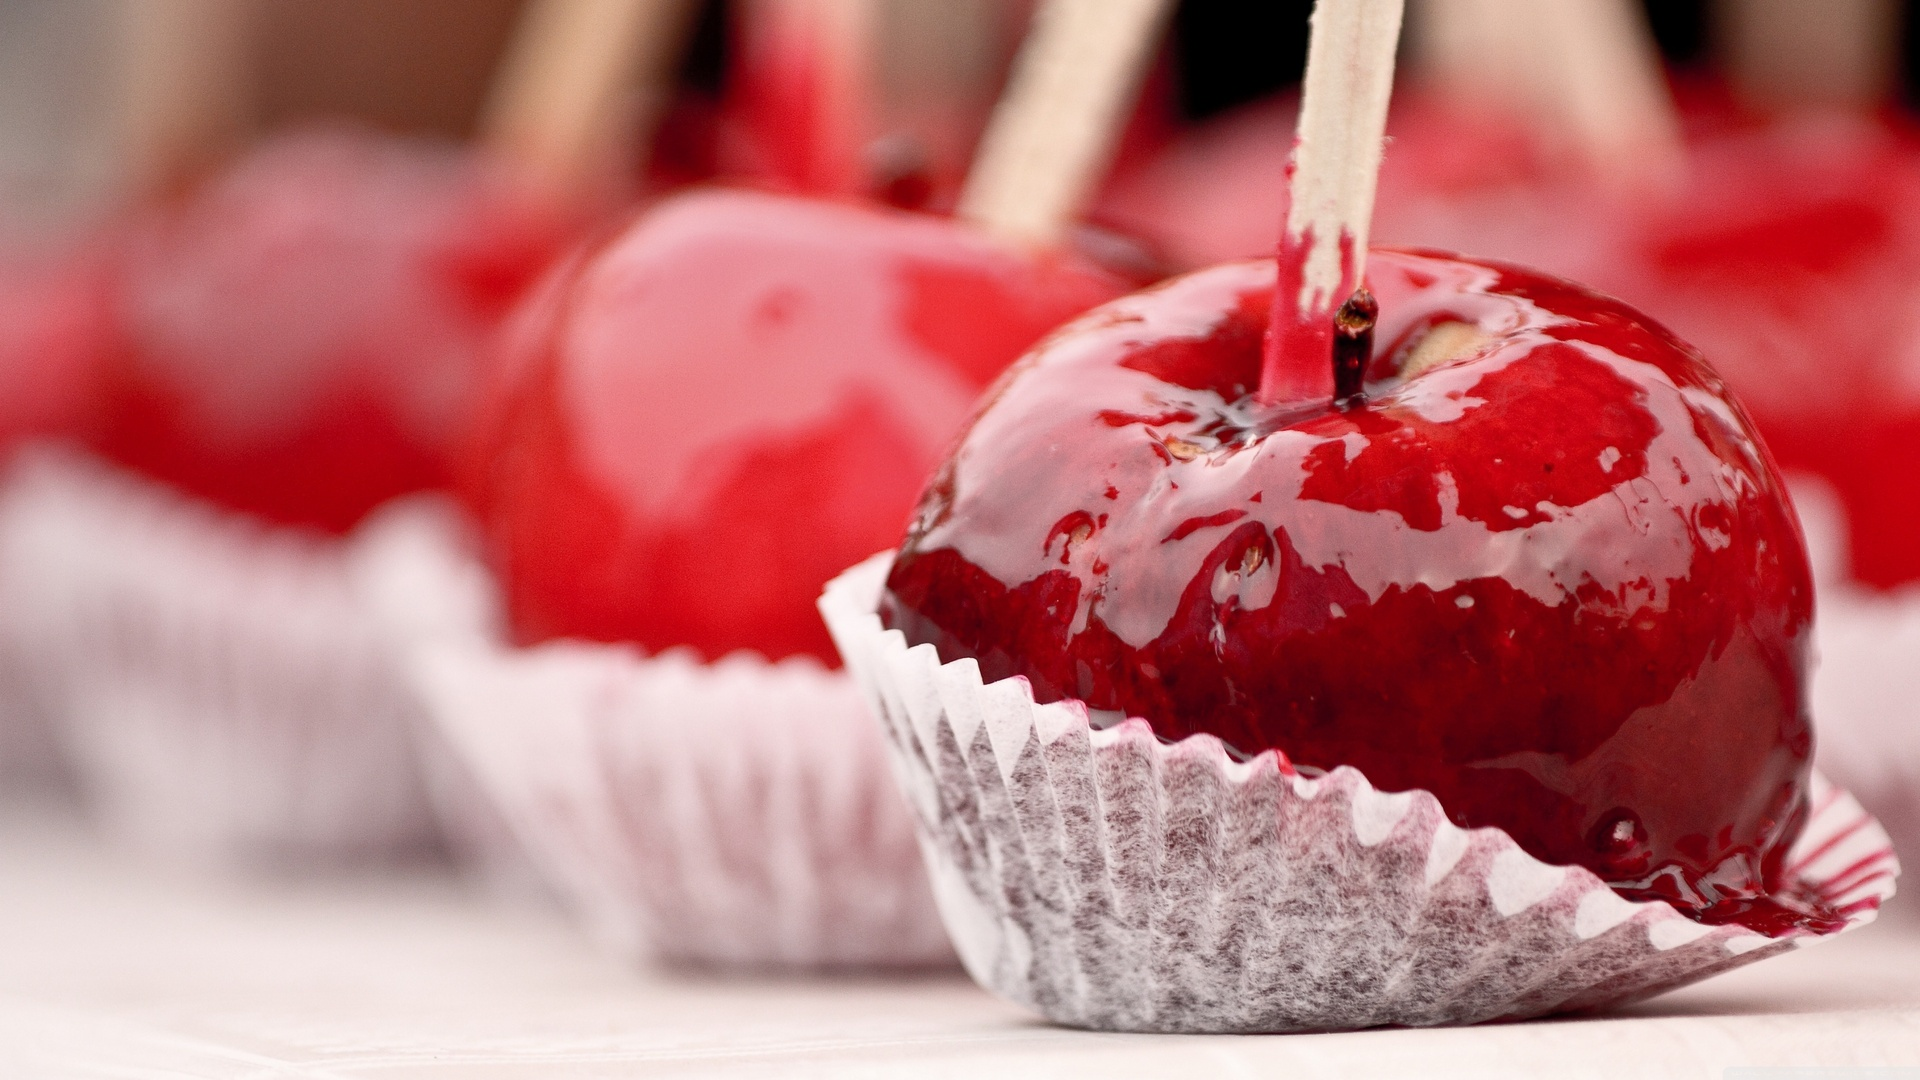 Food-red-cherry-syrup-candy-apple-sweets-1920x1080-wallpaper-wpc5804920